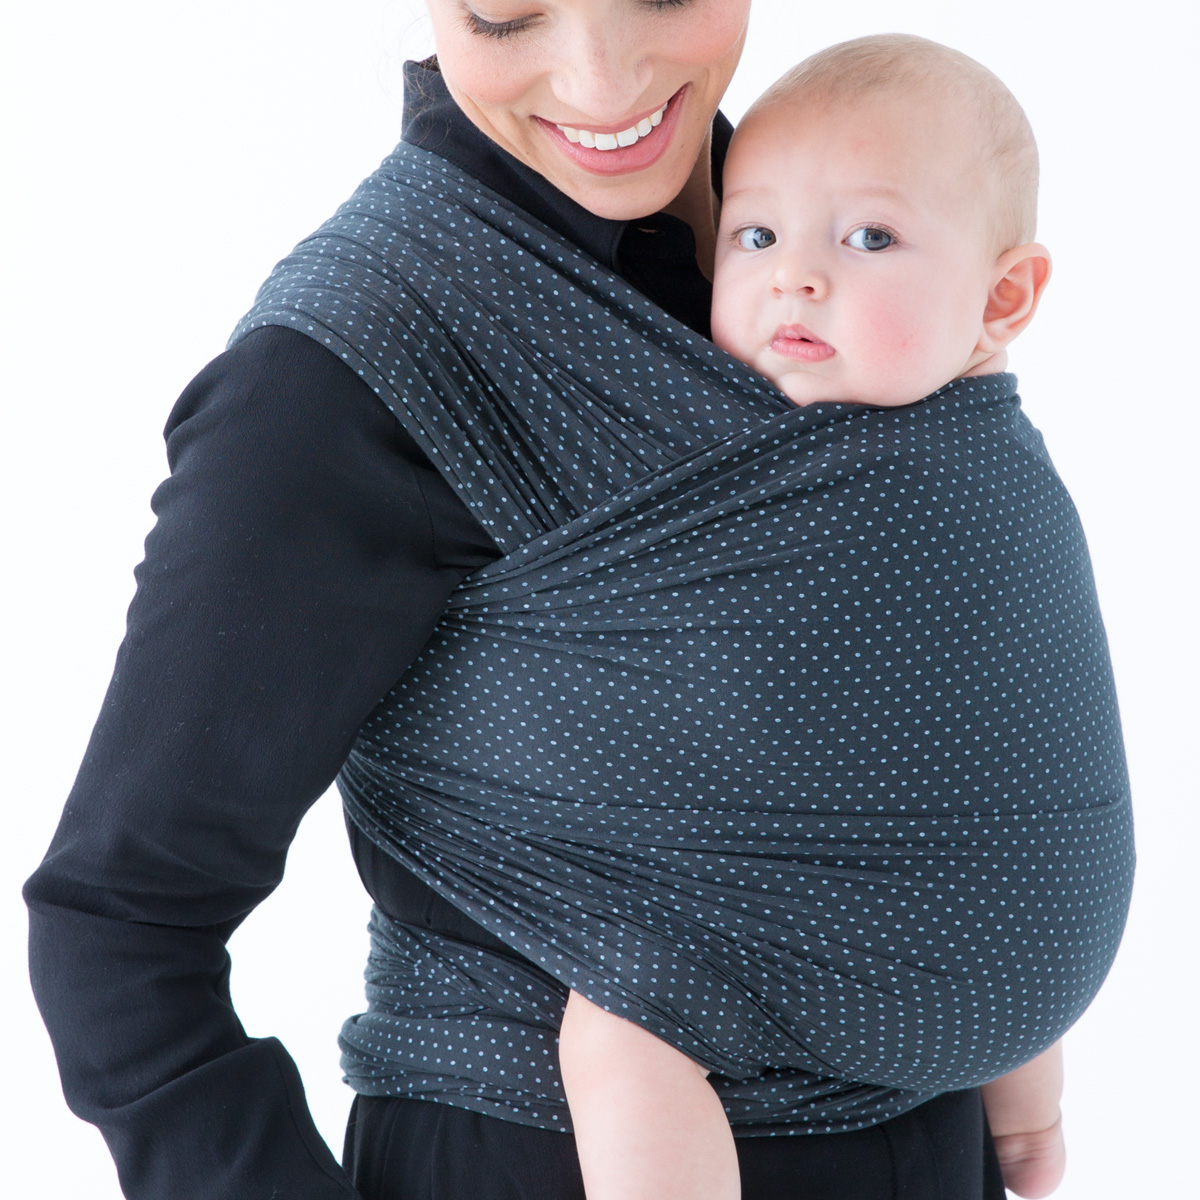 Solly Baby Original Wrap Carrier Thetot